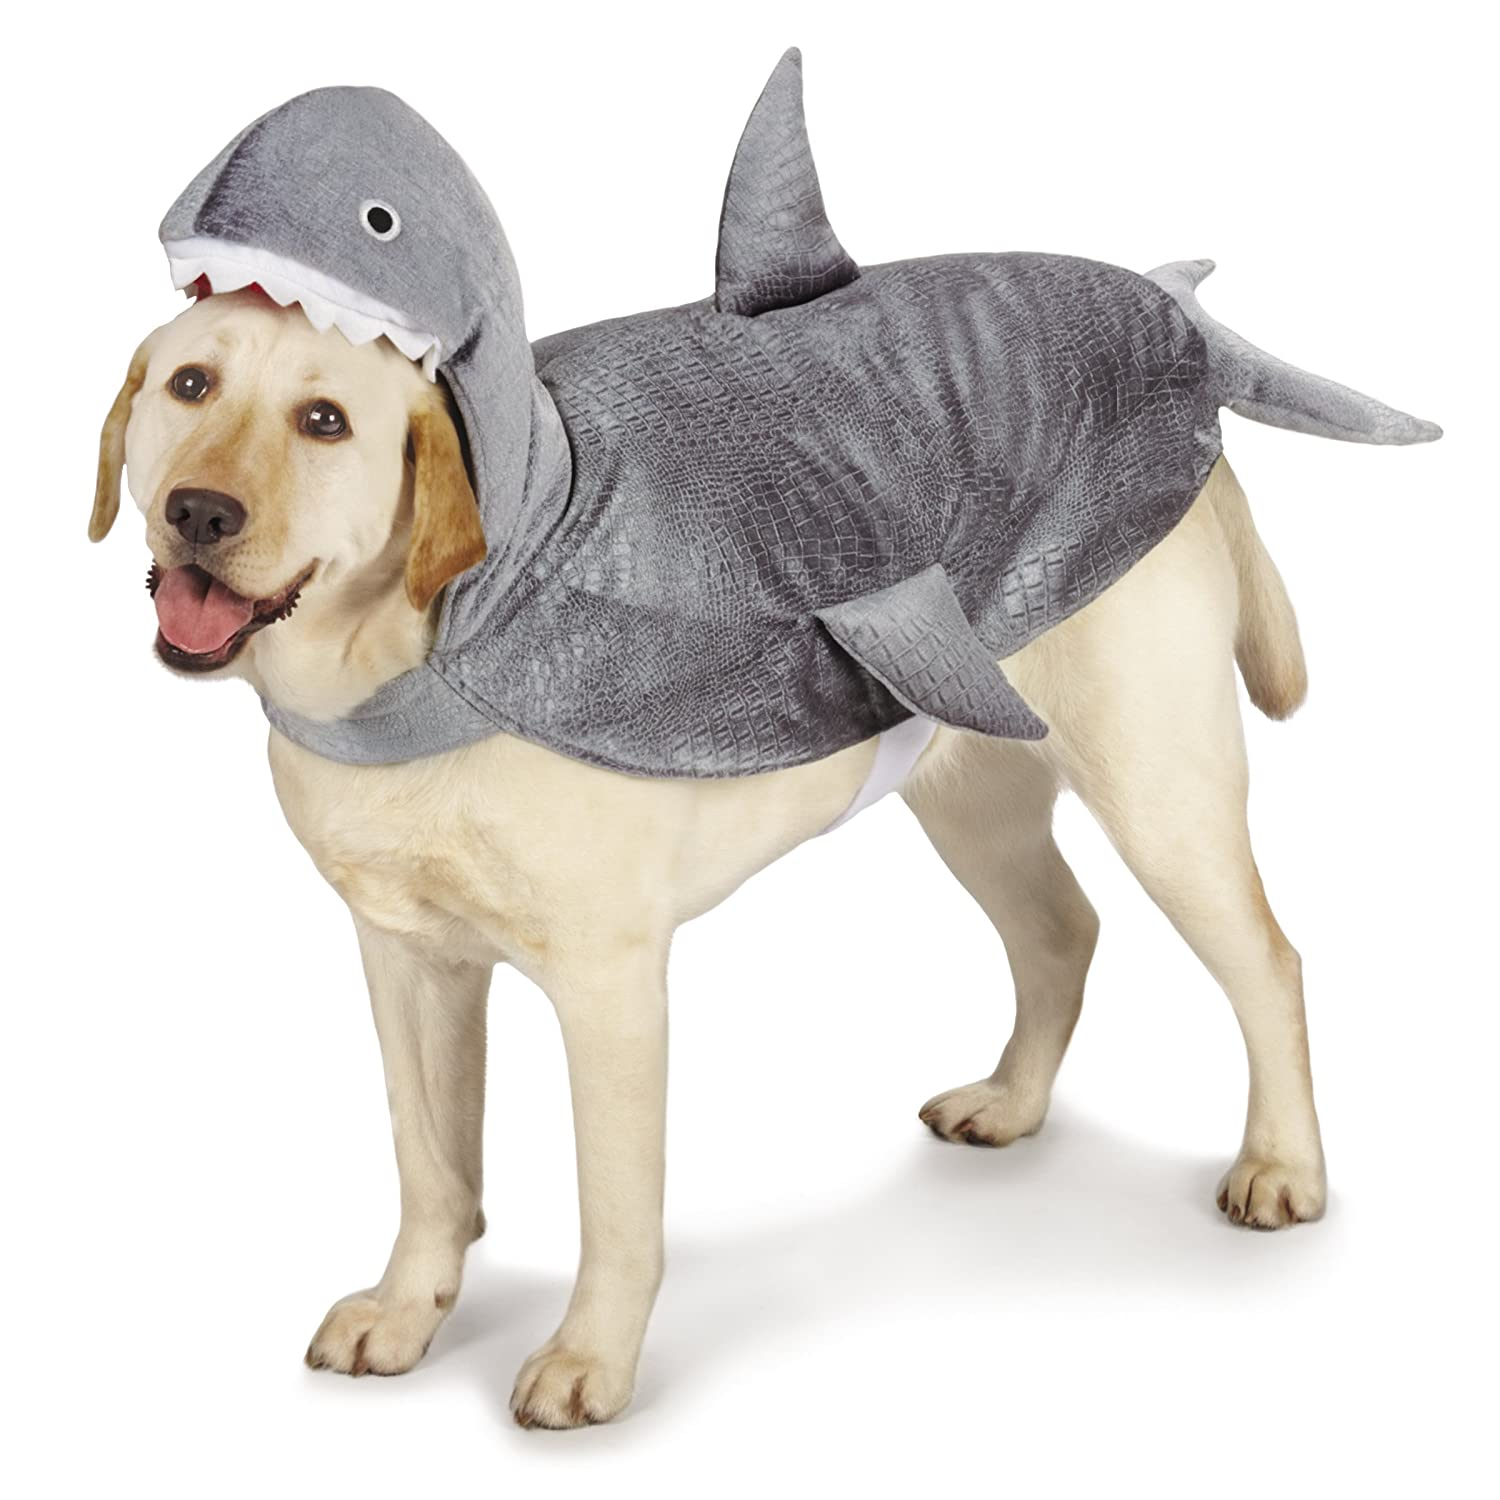 Large Dog Shark Costume Shark Dog Costume X-large